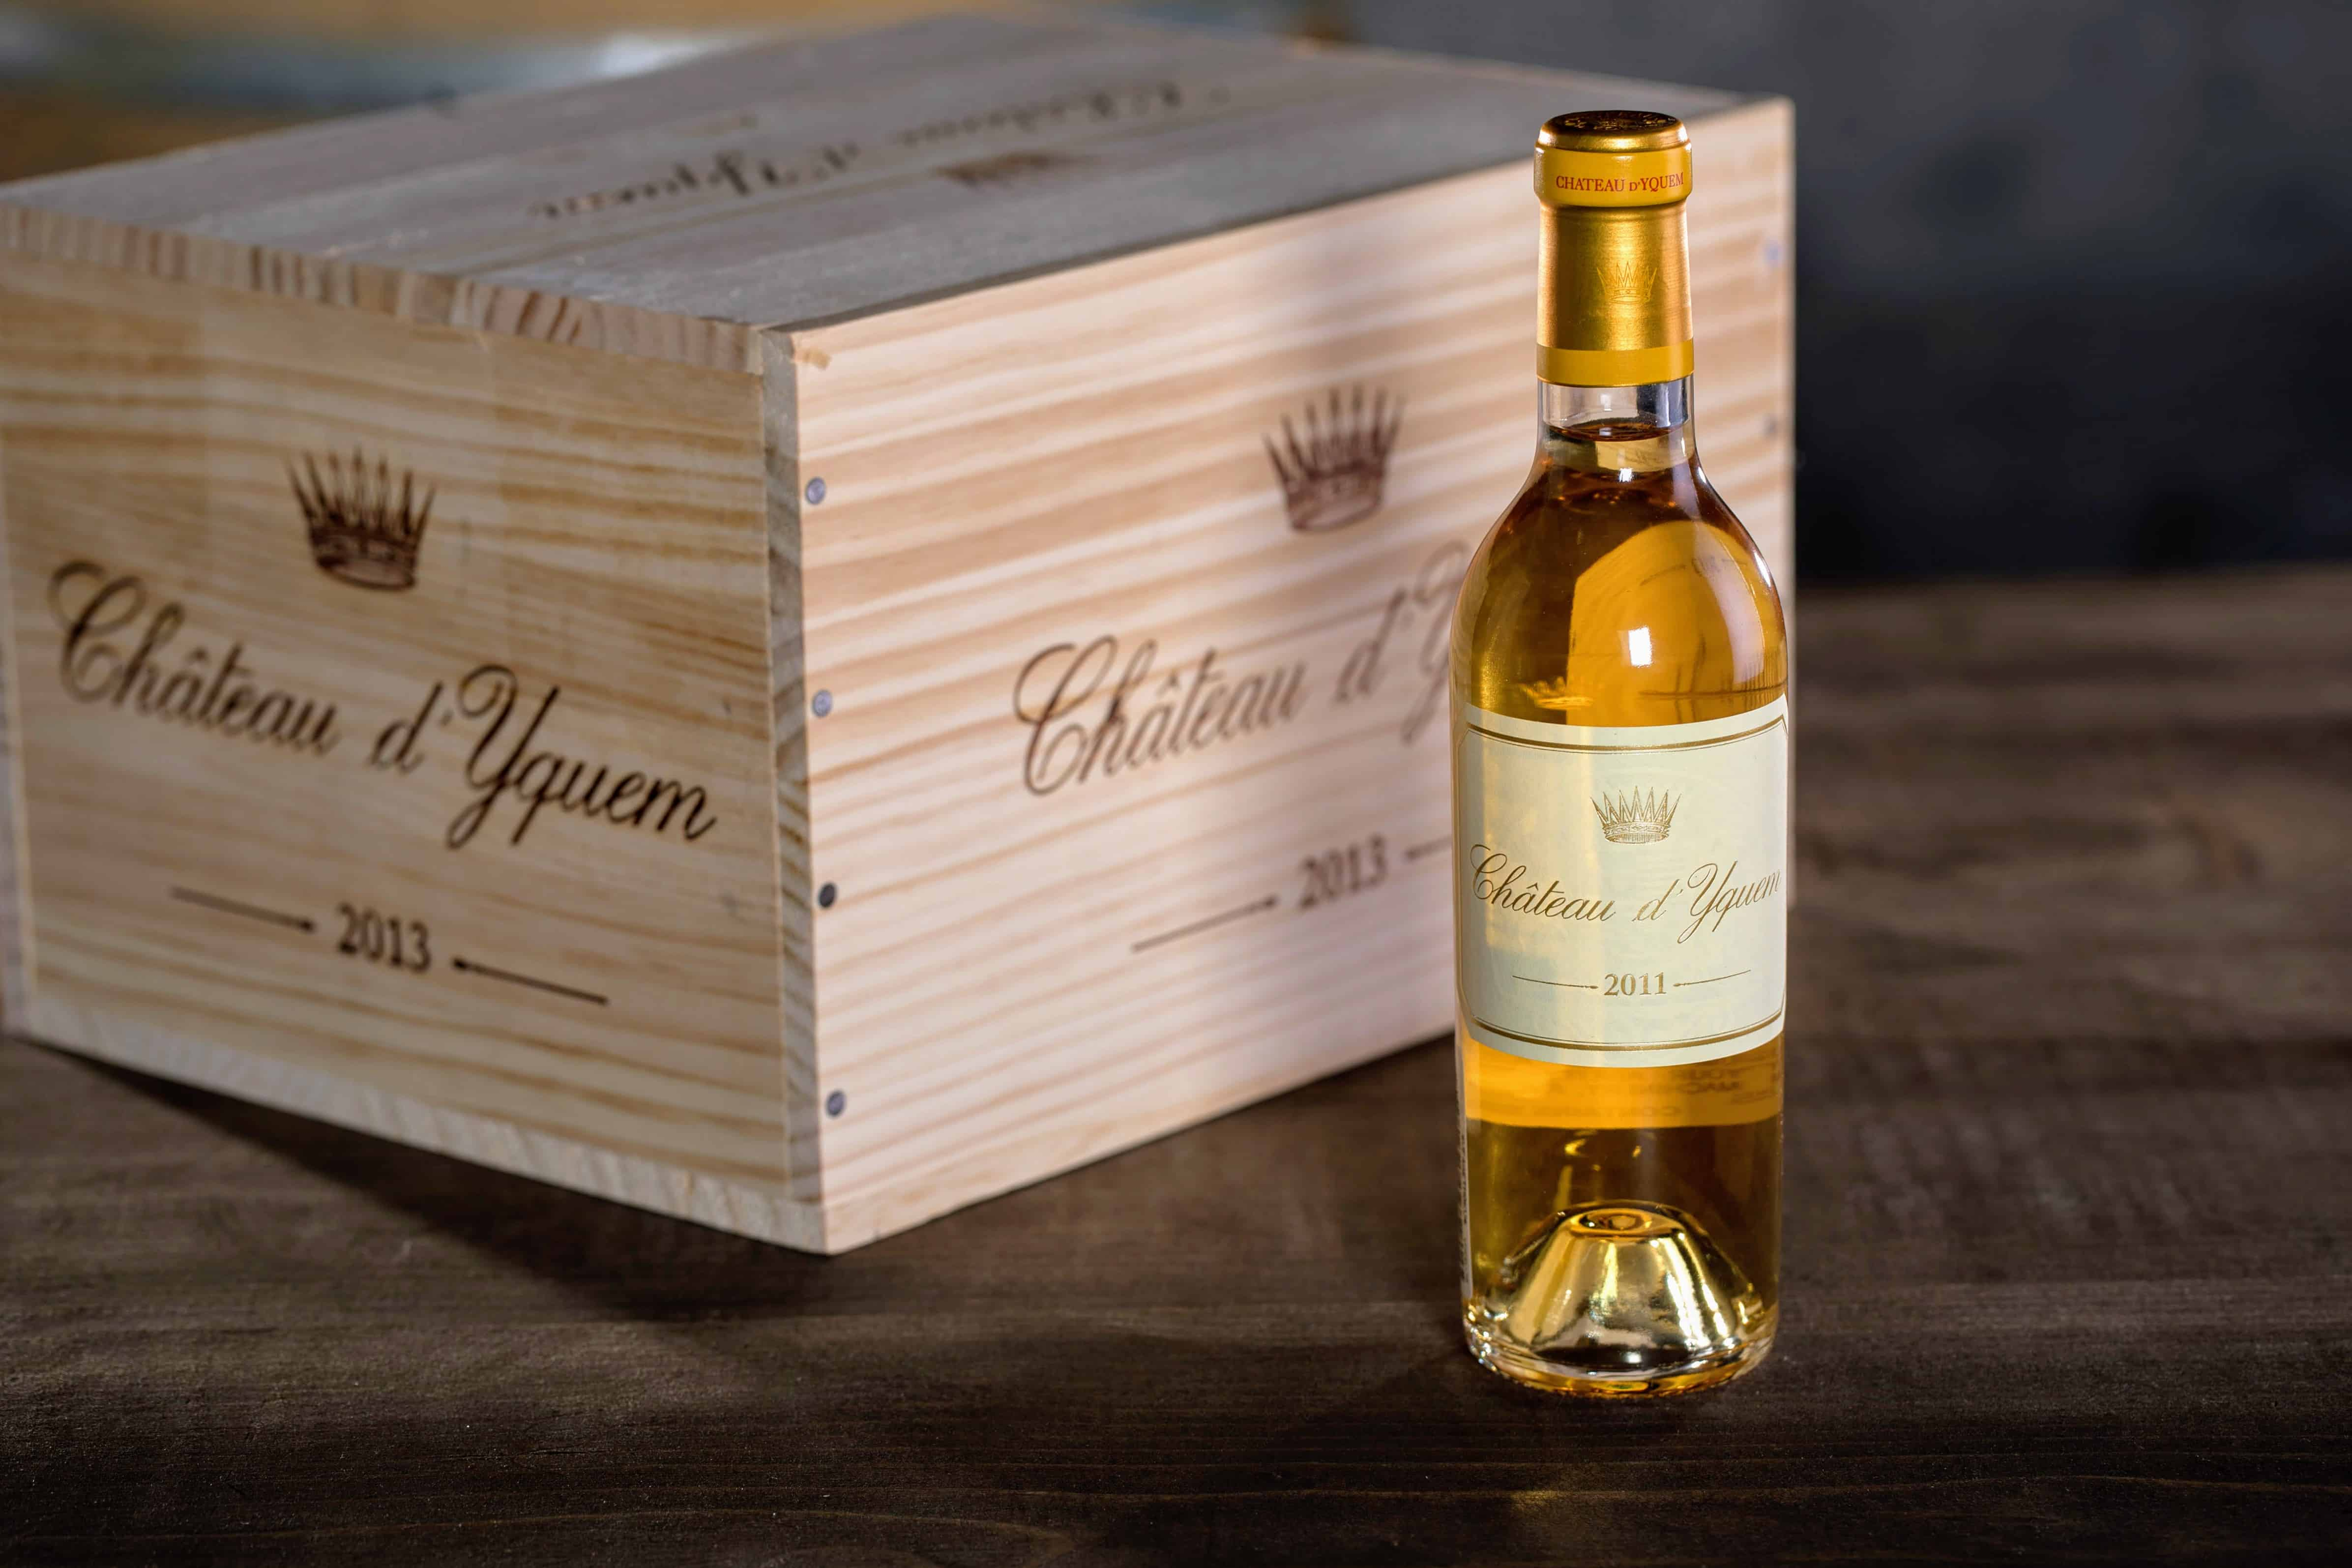 There are many great Château d'Yquem food pairings